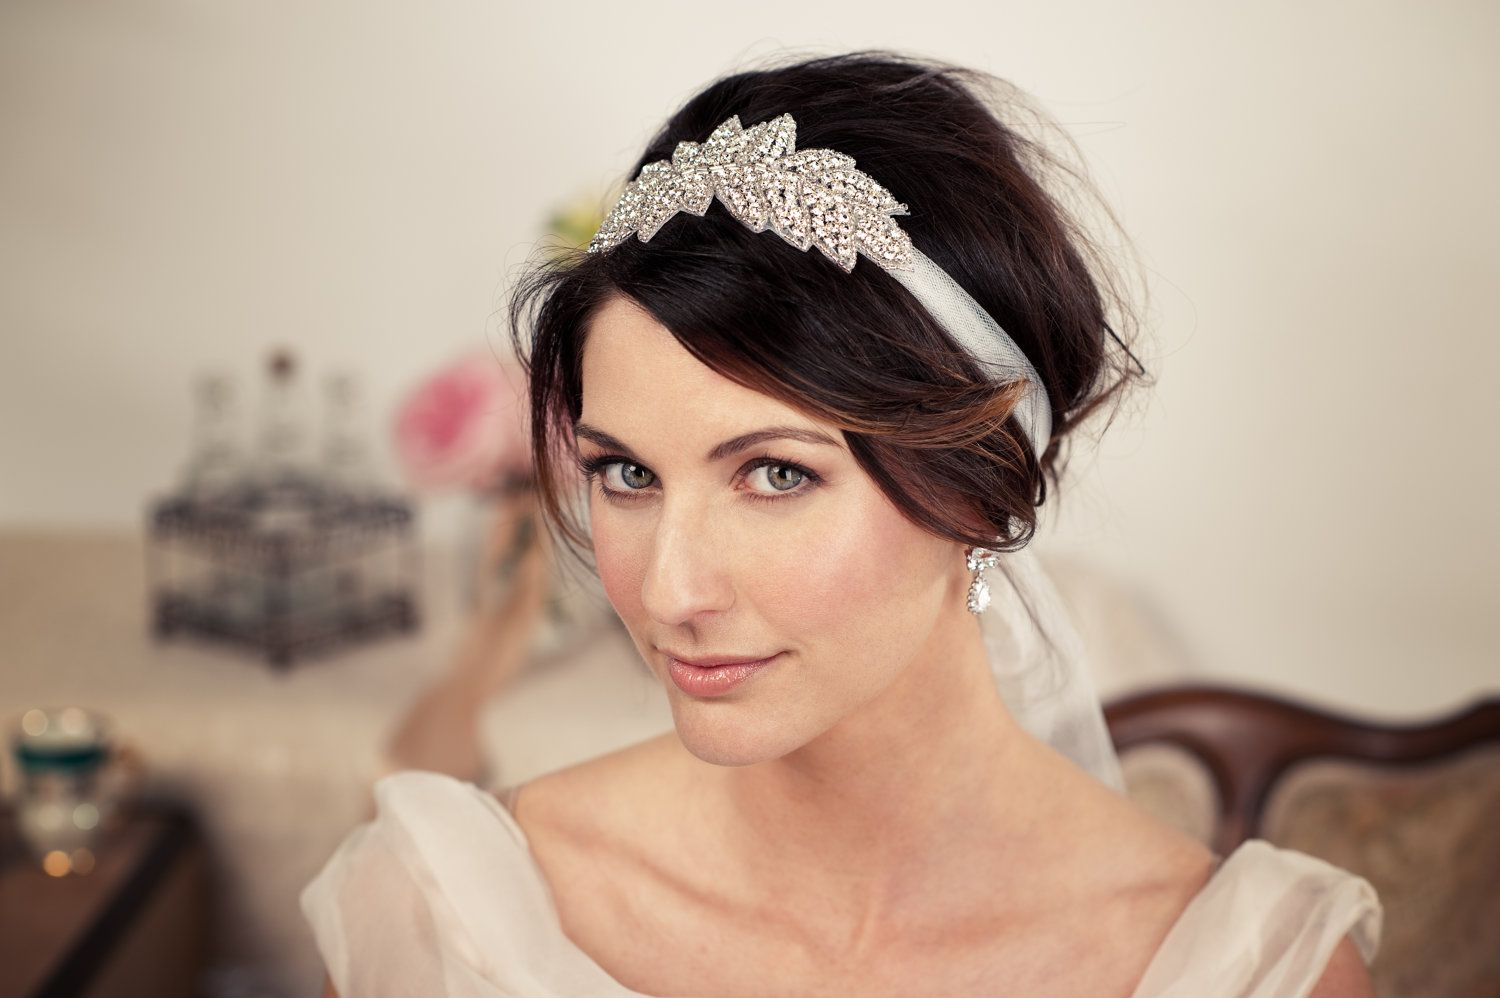 wedding-hairstyles-with-headband 1,500×998 pixels | make up/hair